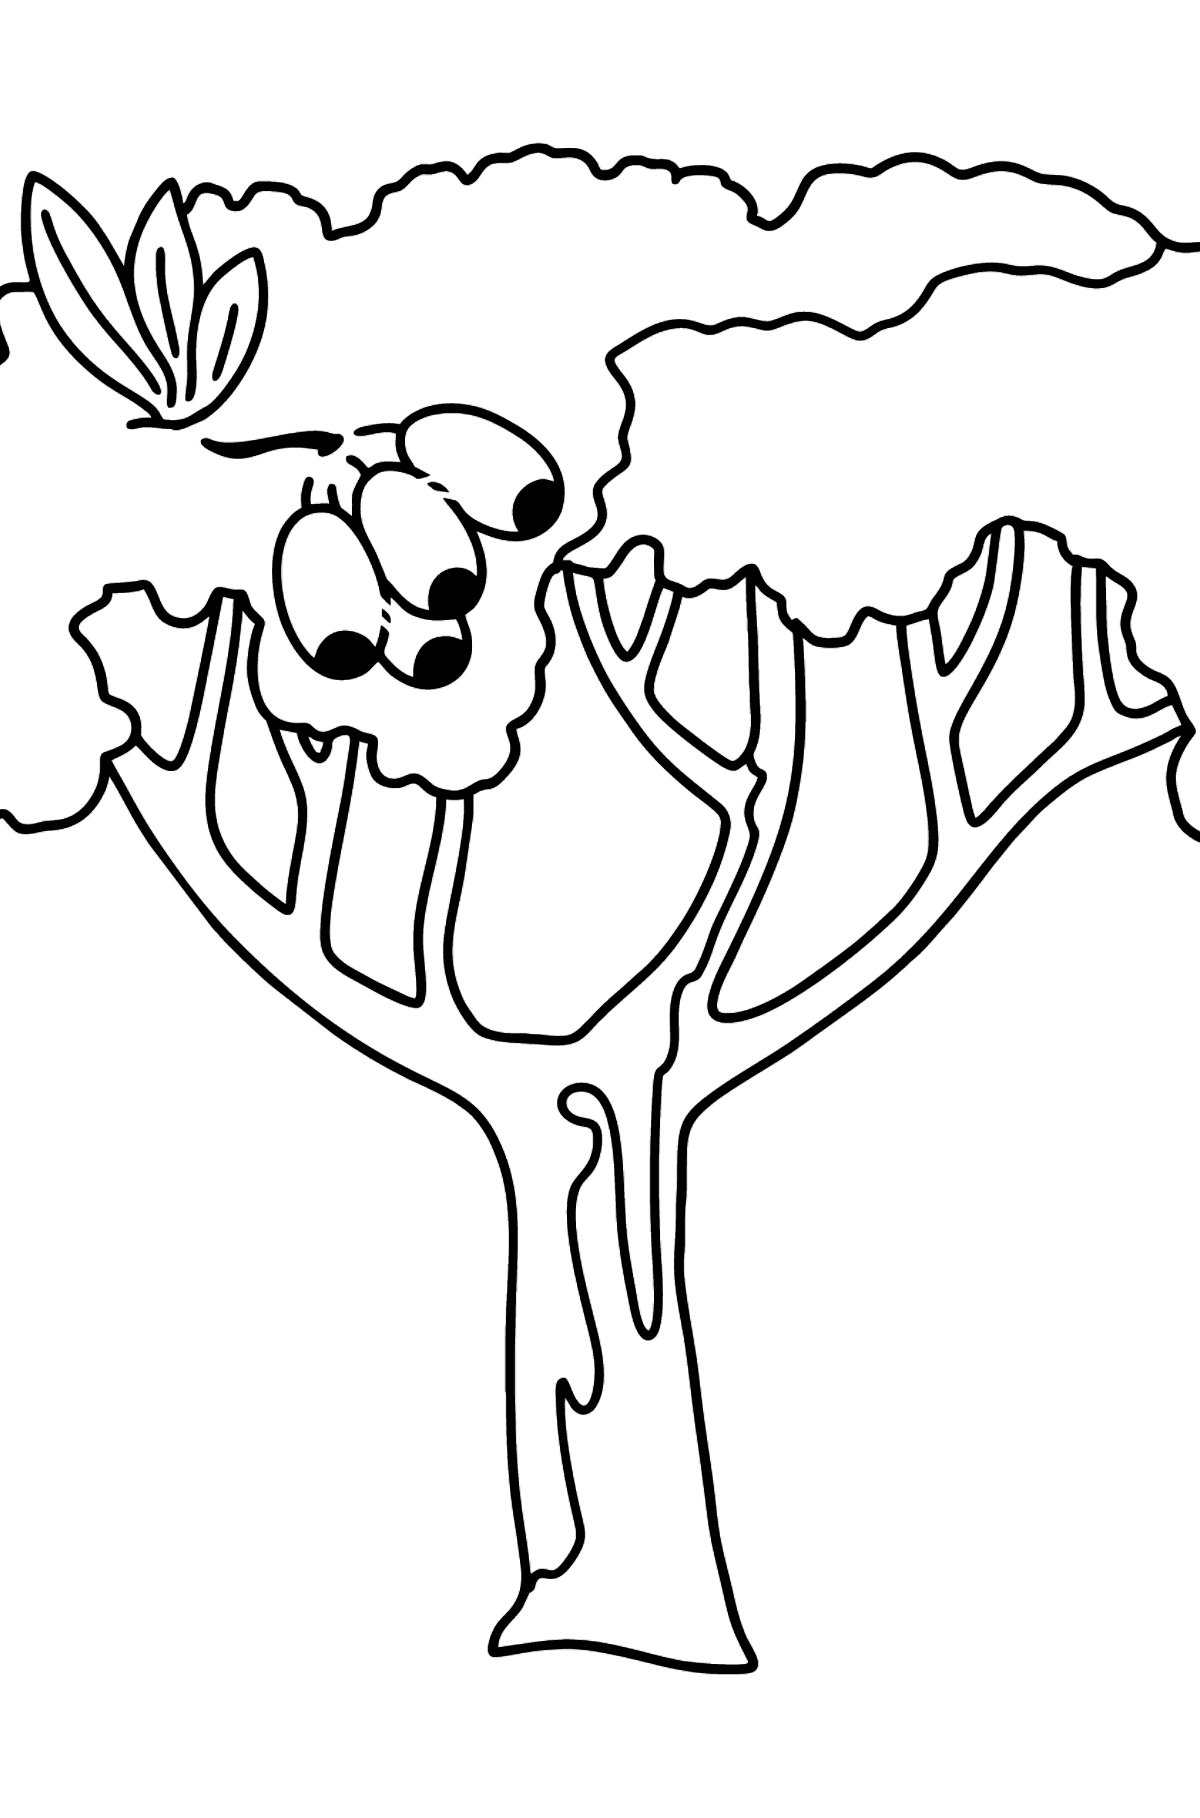 Gum tree - Corimbia coloring page - Coloring Pages for Kids